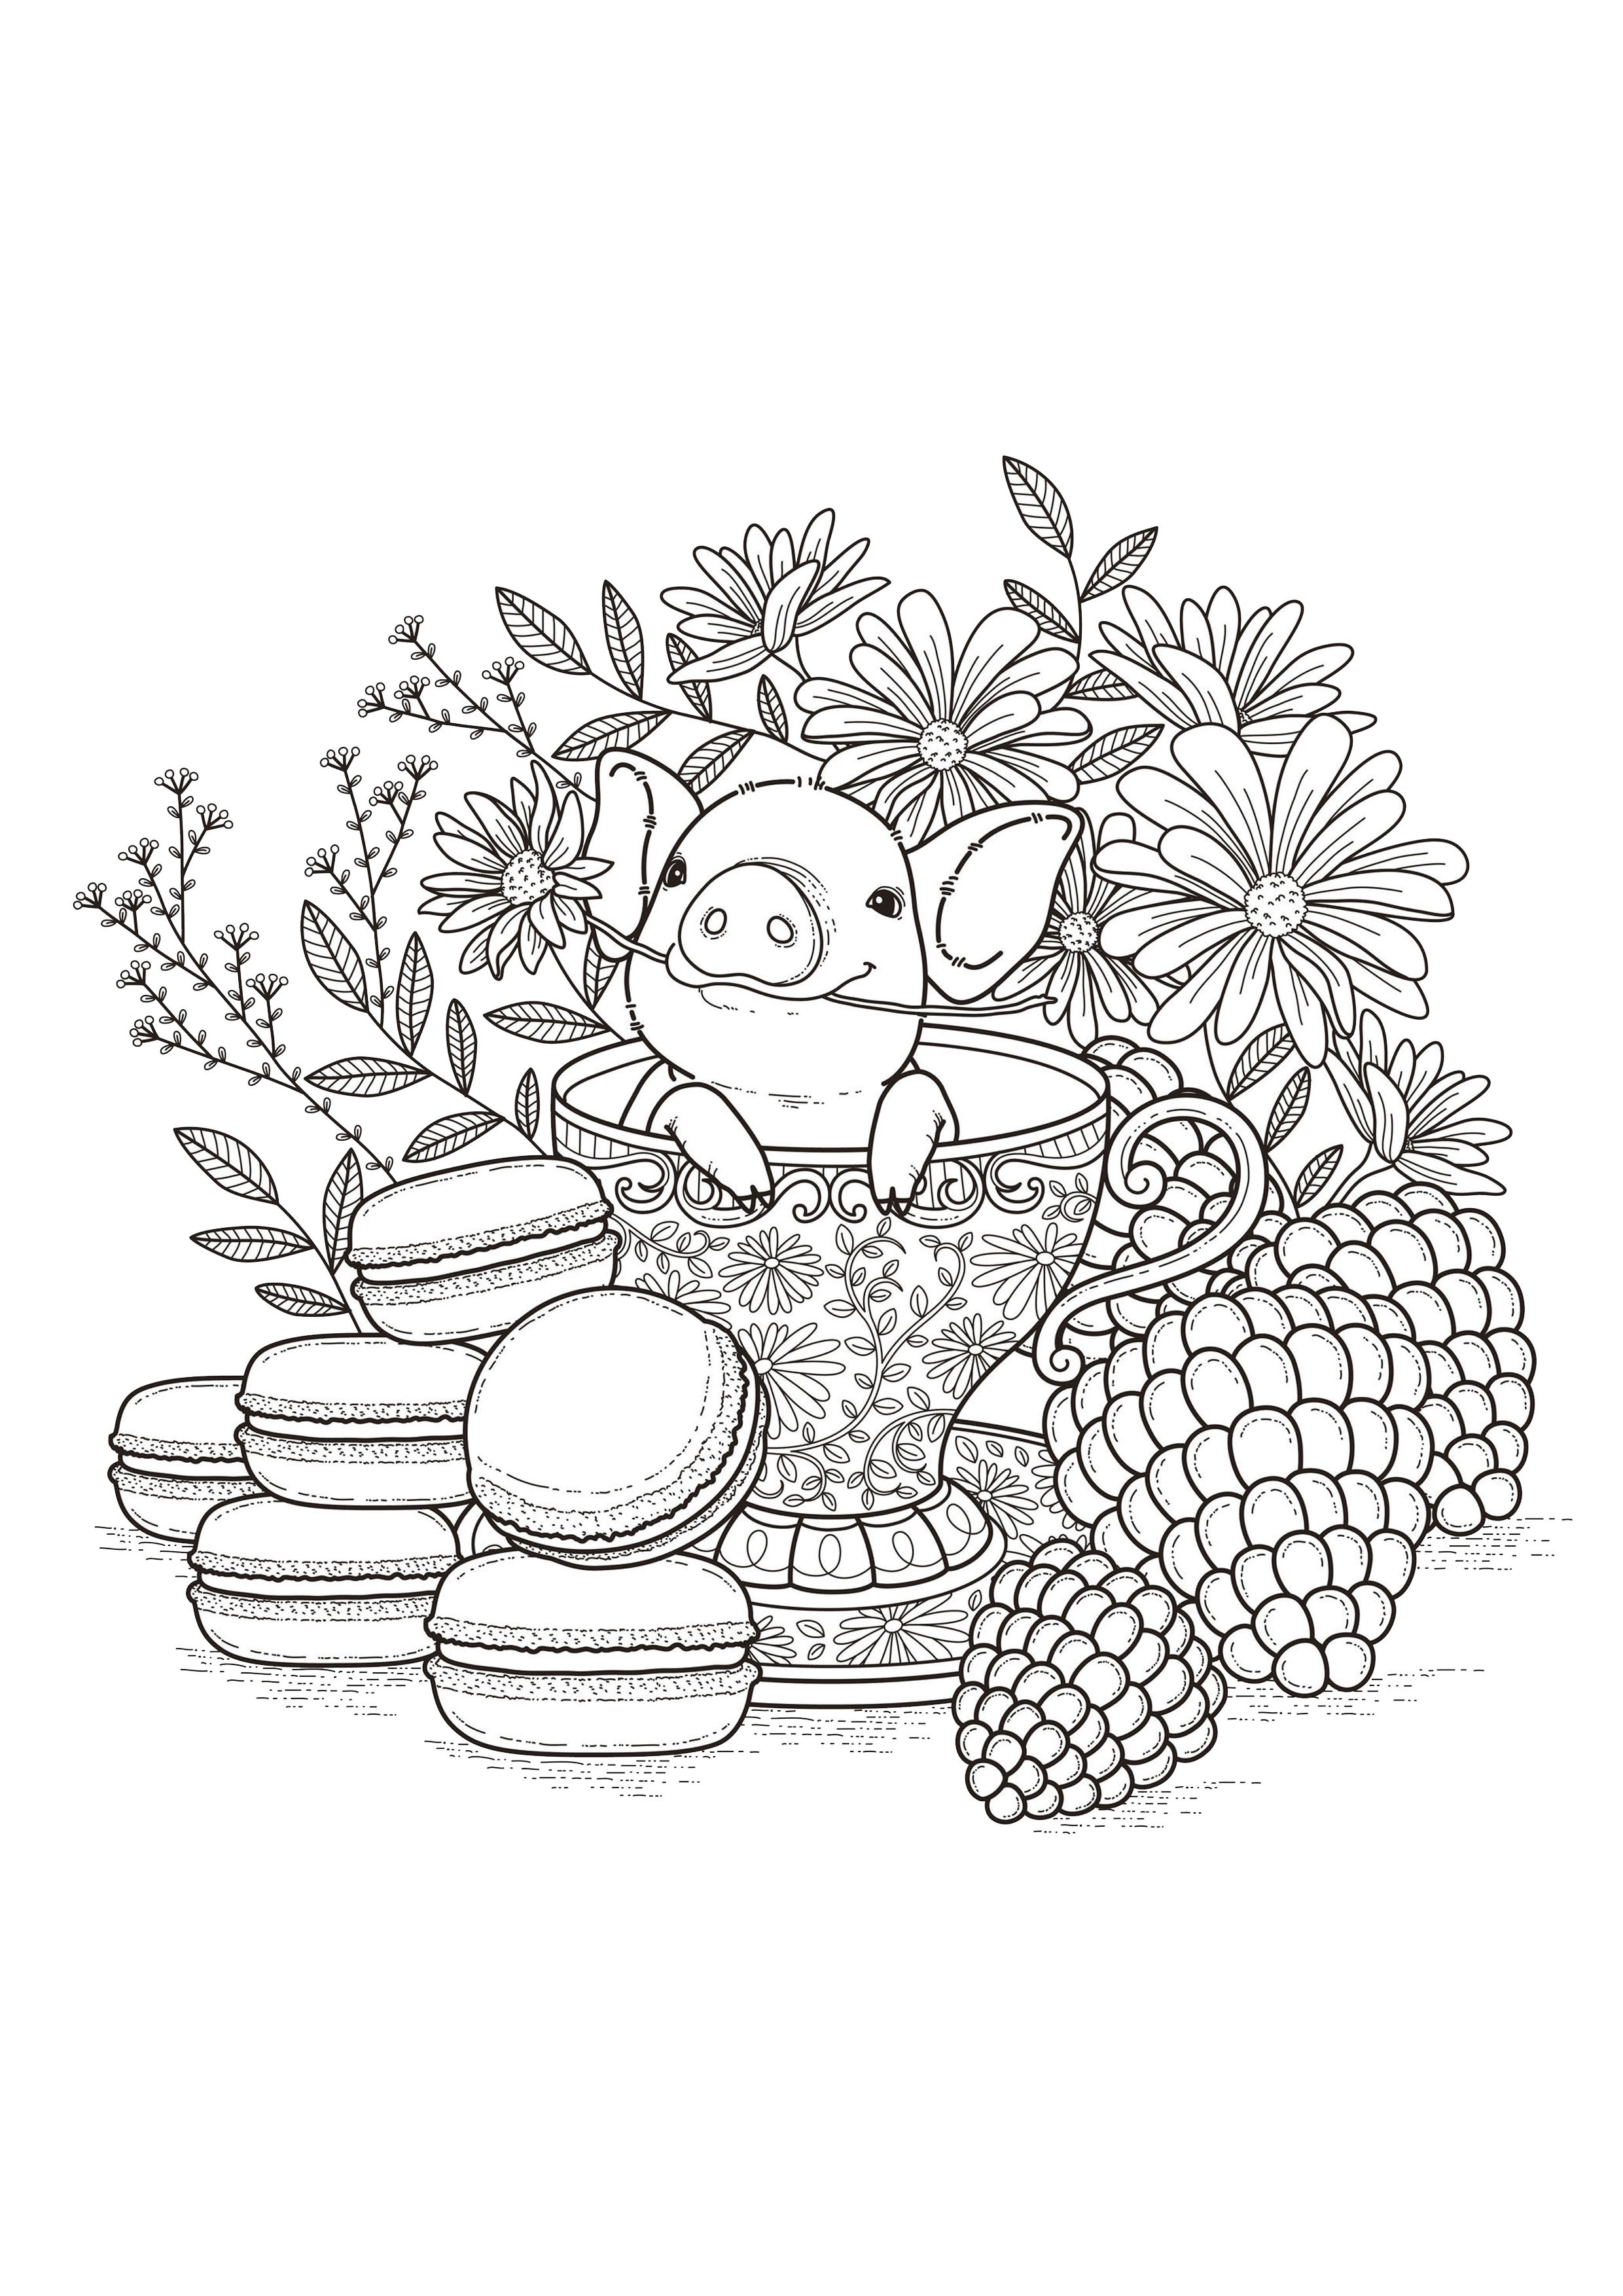 Best ideas about Fruit Coloring Pages For Adults . Save or Pin Fruits macaroons Flowers Adult Coloring Pages Page 3 Now.